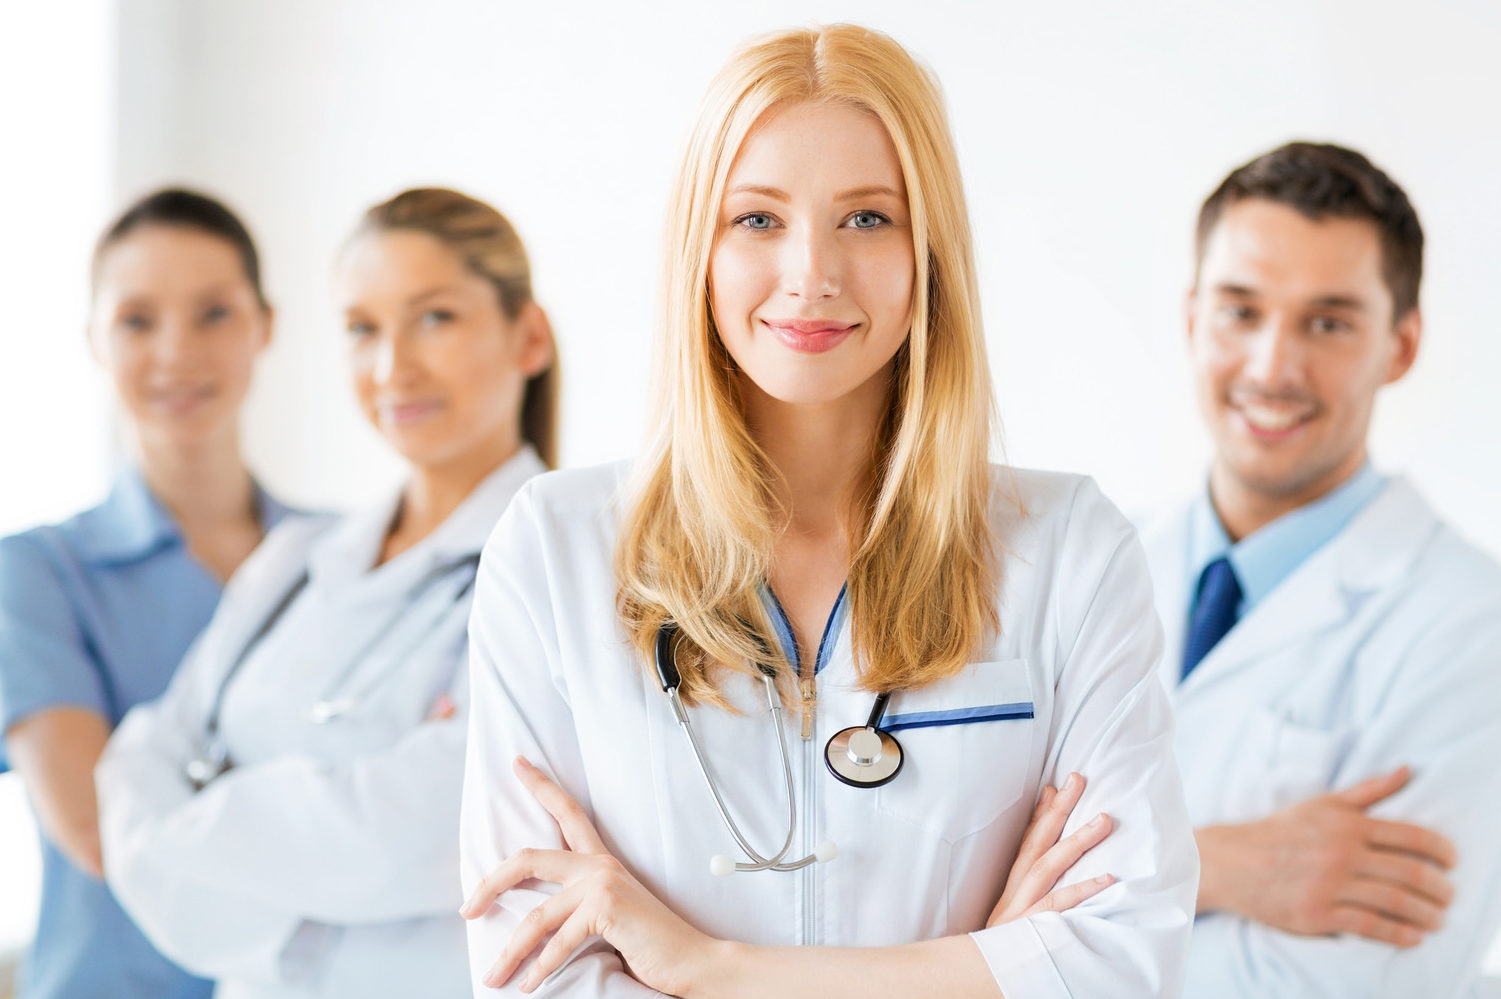 photodune-5079010-female-doctor-in-front-of-medical-group-m